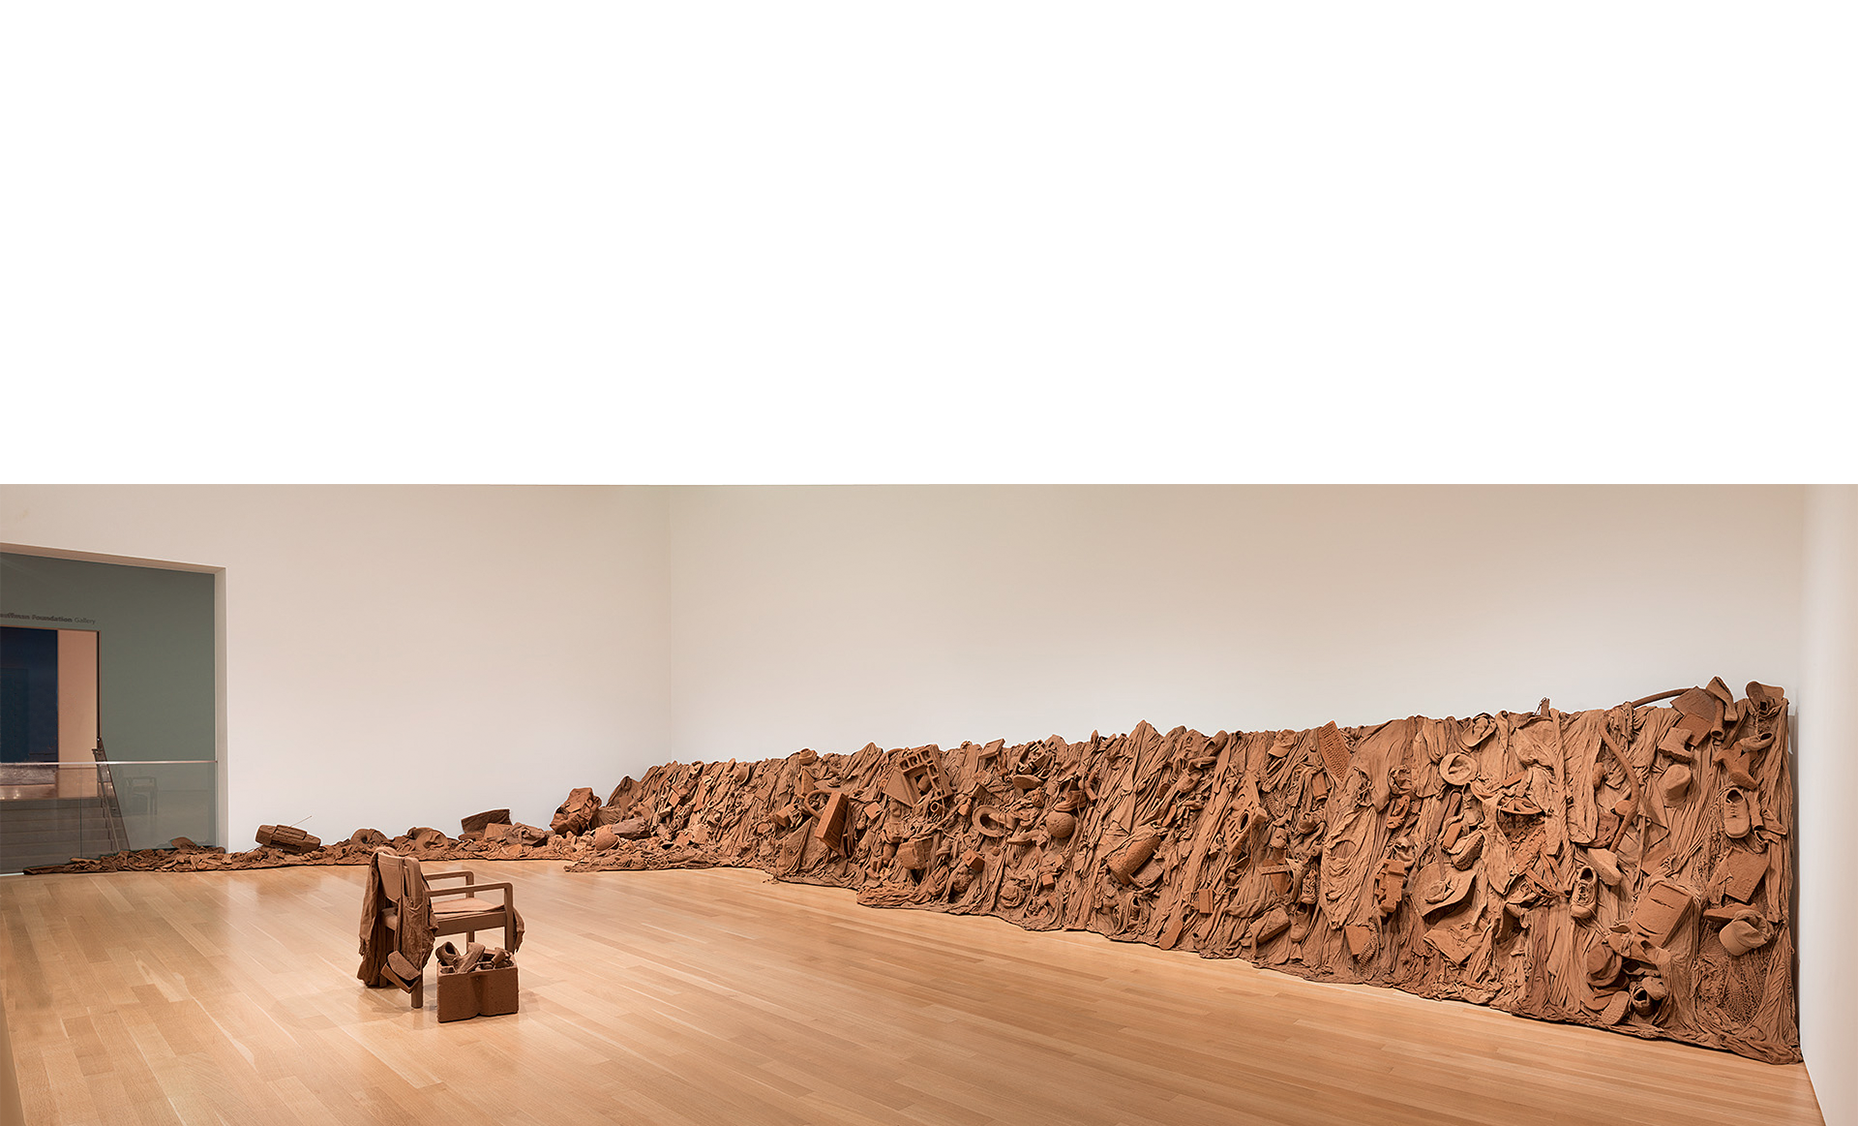 Overview,  Consuming Questions , 2017-18, an avalanche of consumer goods encased in Missouri red subsoil (clay) stabilized with PVA, wooden armature in 6 sections + floor sections.